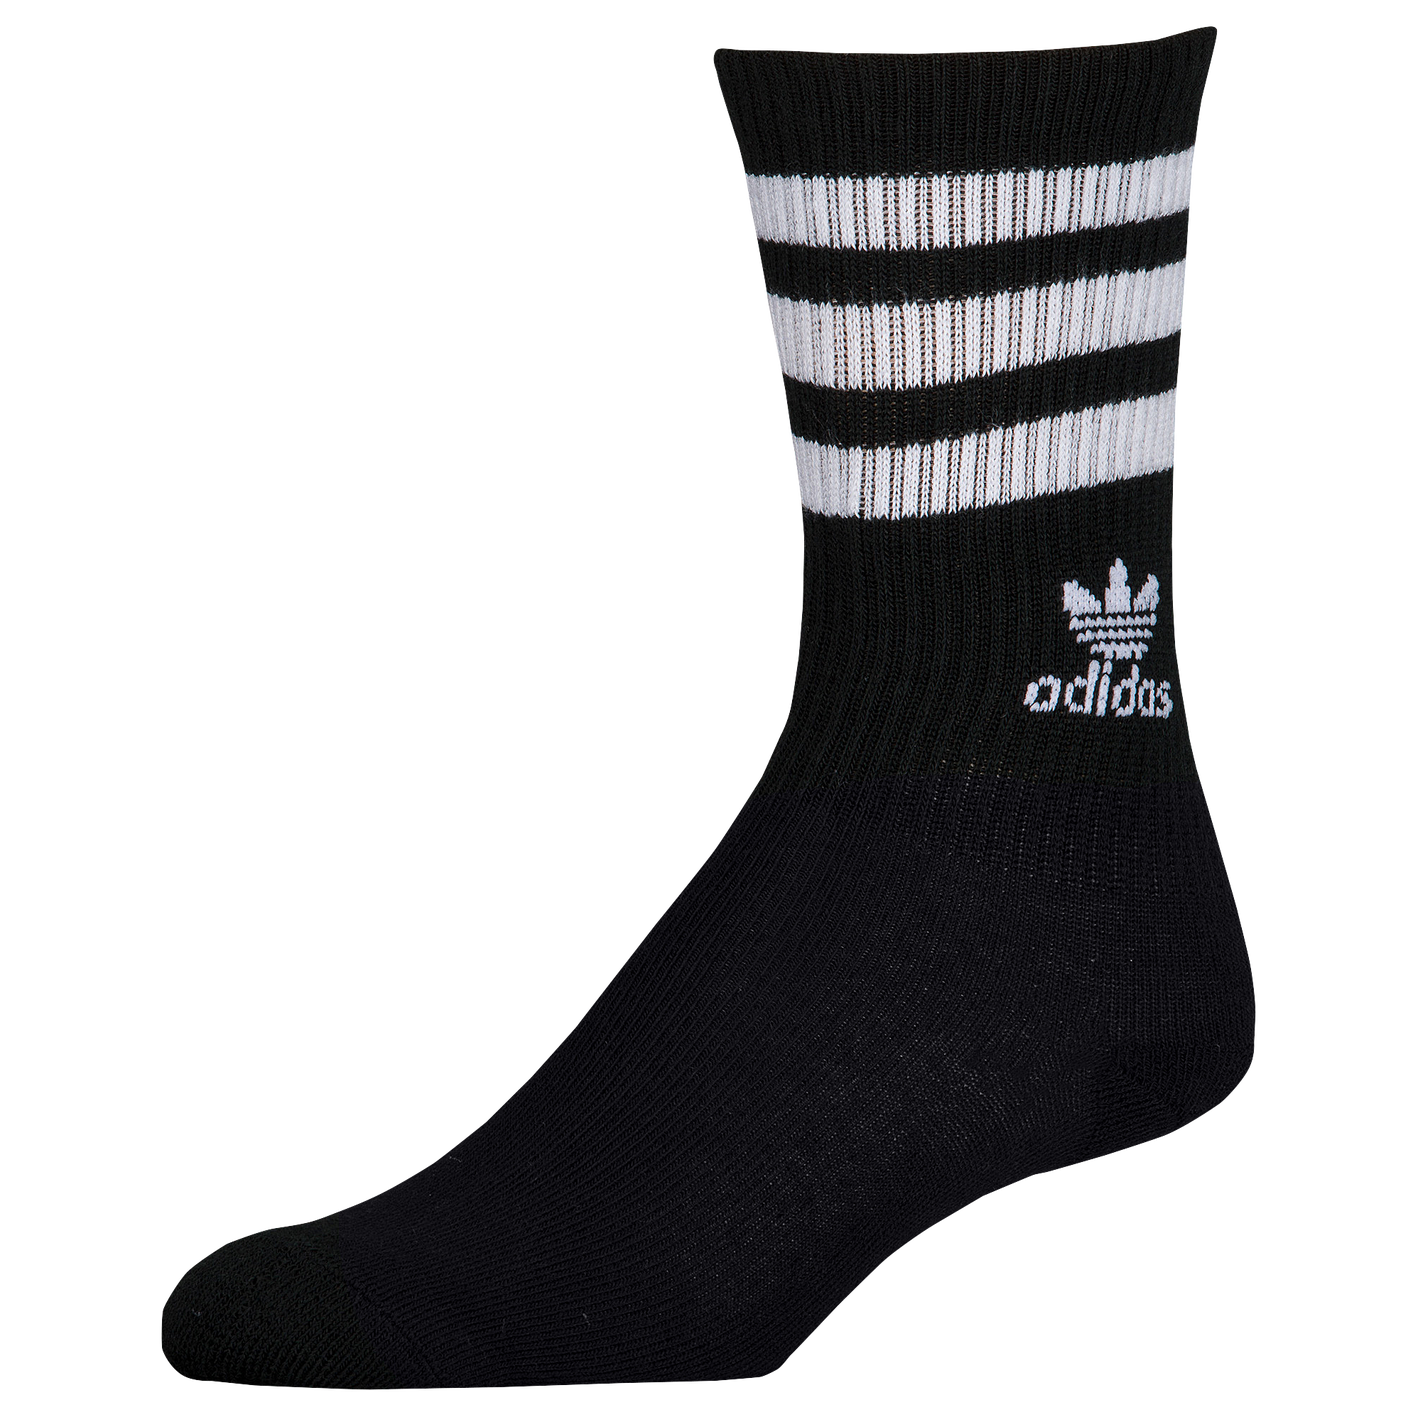 adidas Originals Trefoil Roller Crew Socks - Women s at Eastbay Team Sales 6268005e4